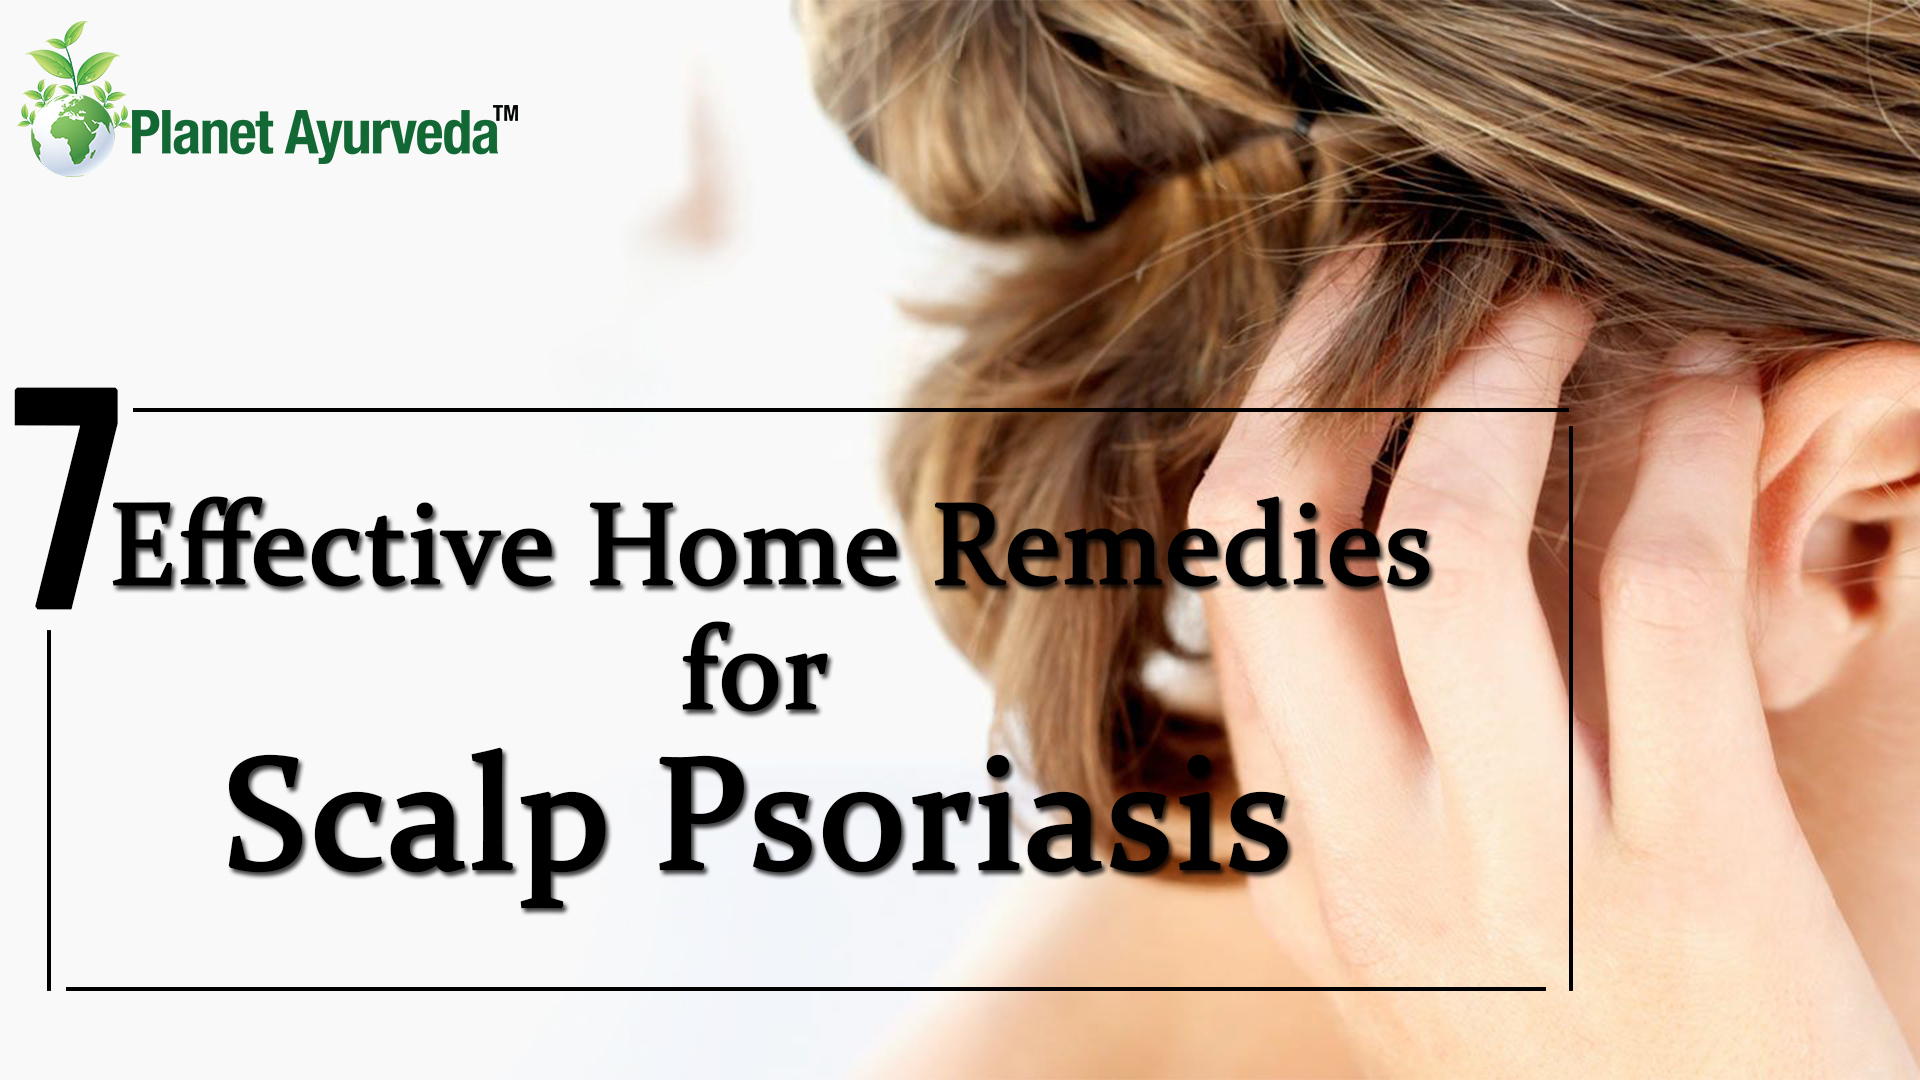 7 Effective Home Remedies for Scalp Psoriasis